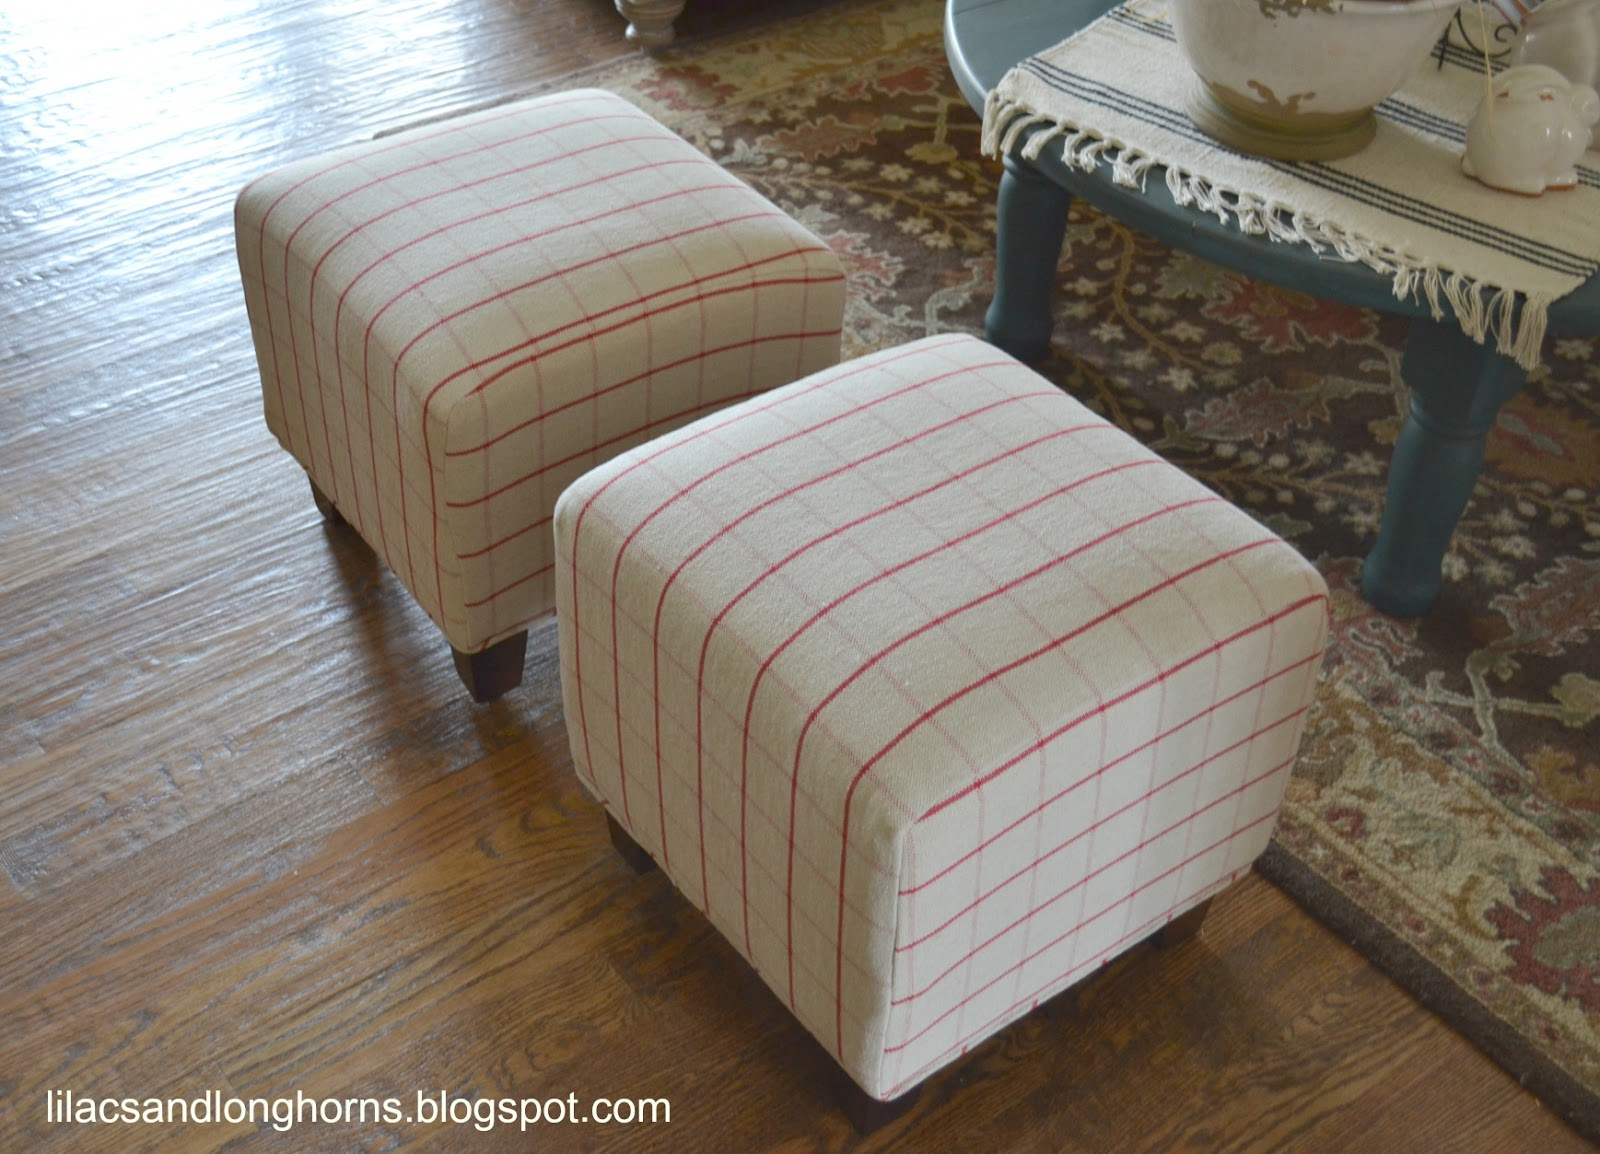 I did it reupholstering cube ottomans tutorial lilacs and longhornslilacs and longhorns